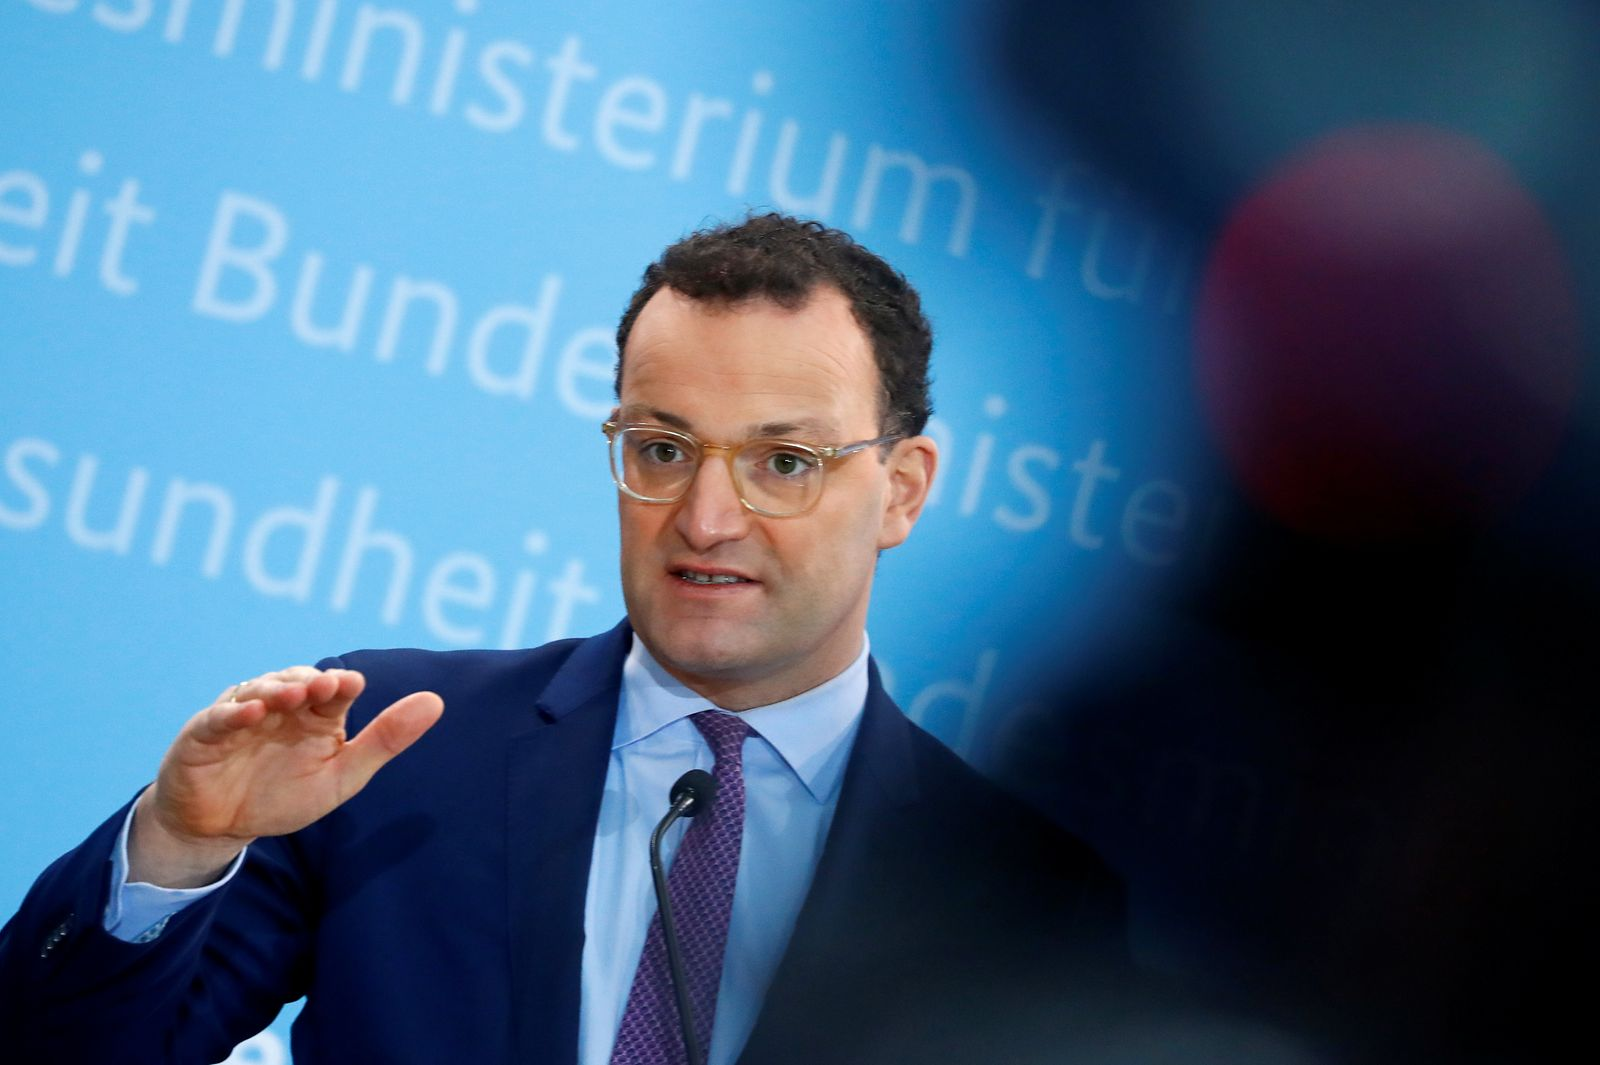 German Health Minister Spahn holds news conference in Berlin